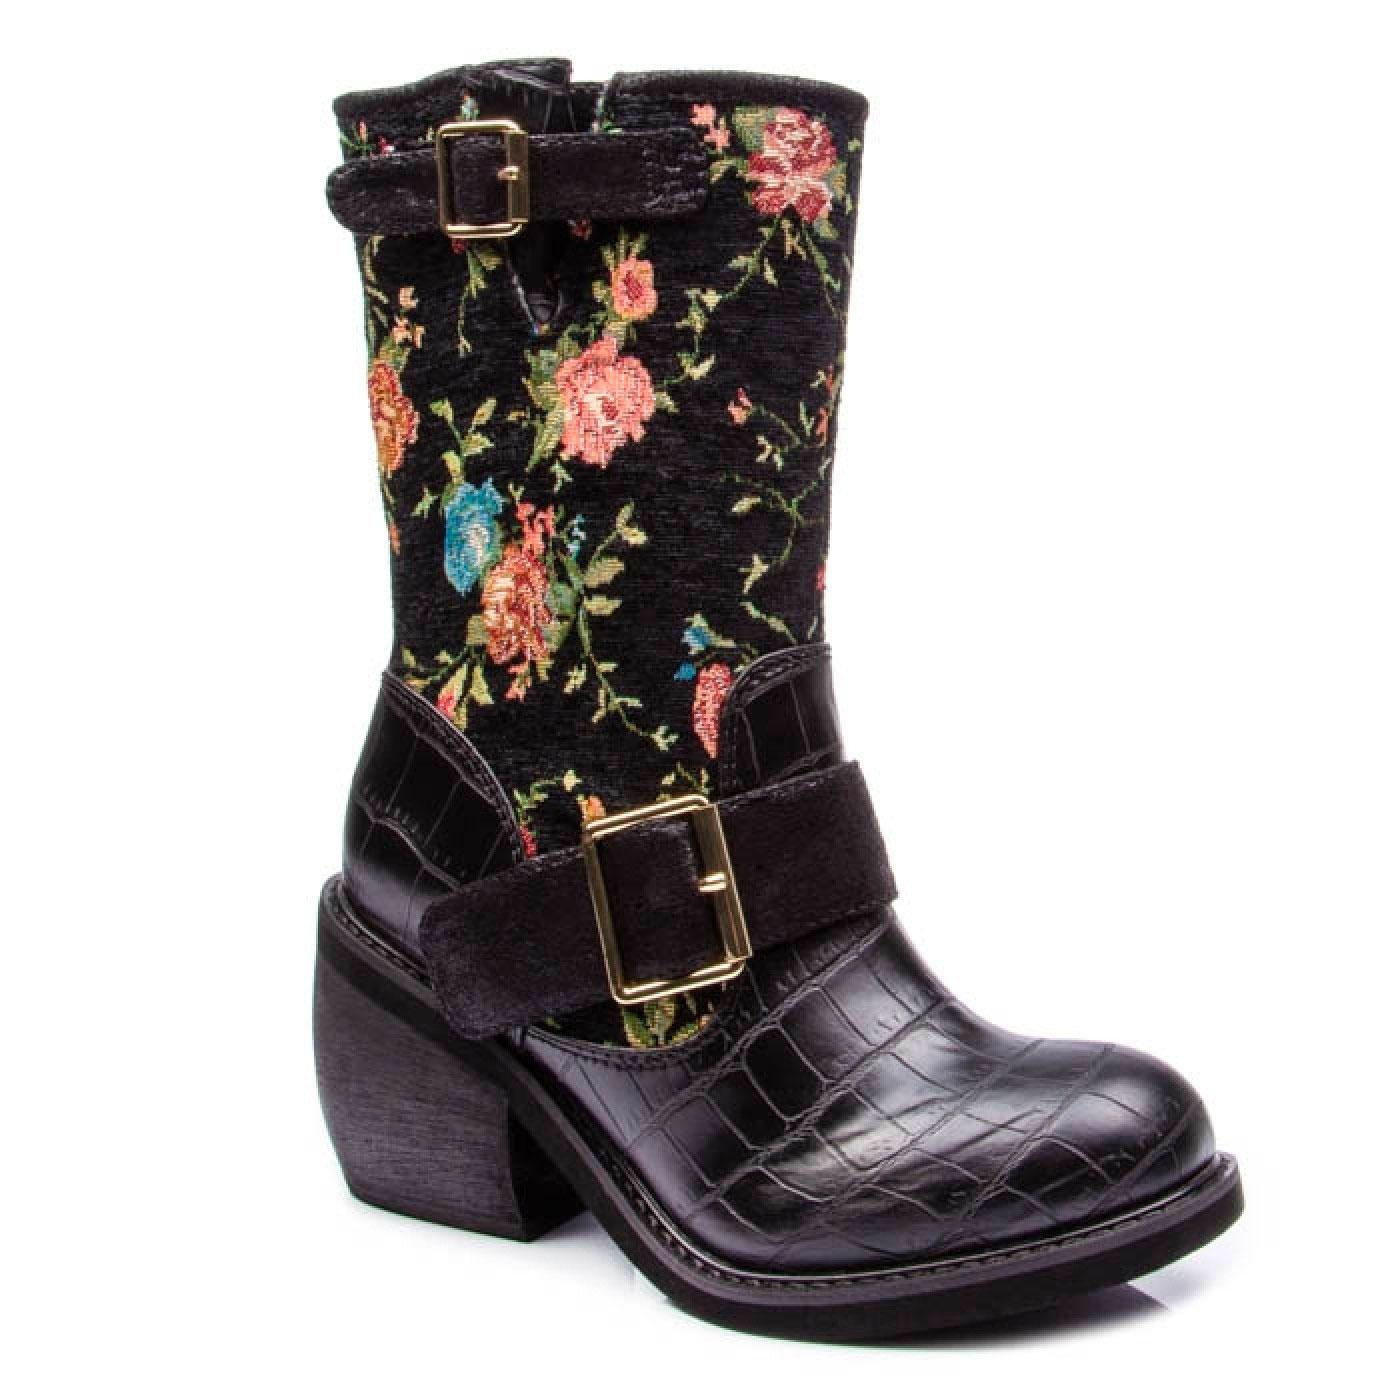 Great Escape IRREGULAR CHOICE Retro Floral Boots